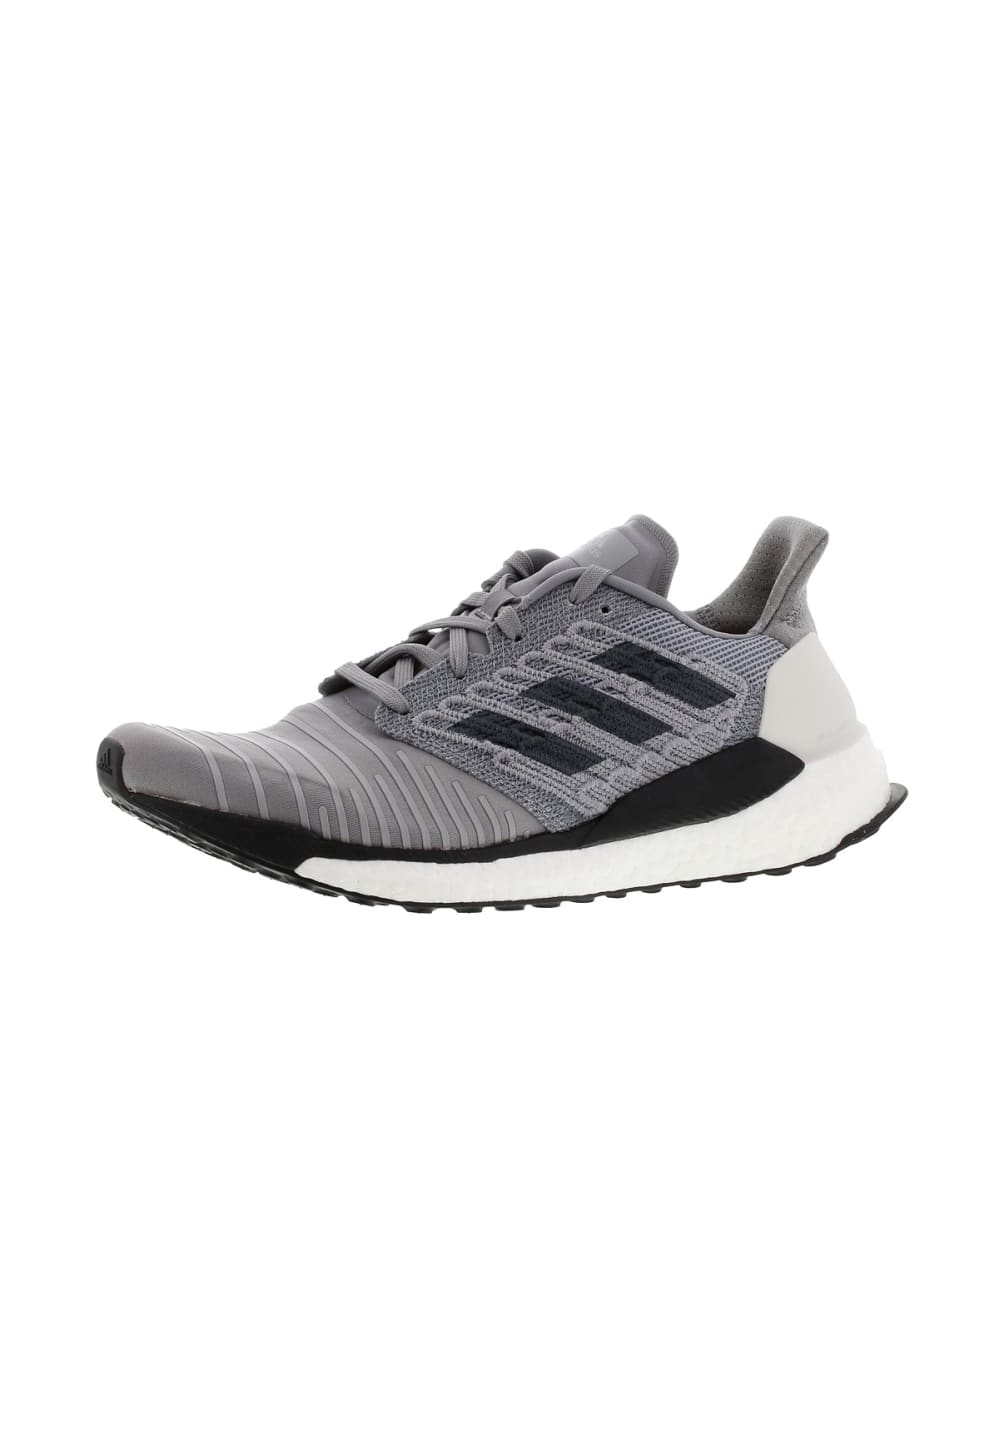 ddfd59e1139f0 ... adidas Solar Boost - Running shoes for Men - Grey. Back to Overview. 1   2  3  4  5. Previous